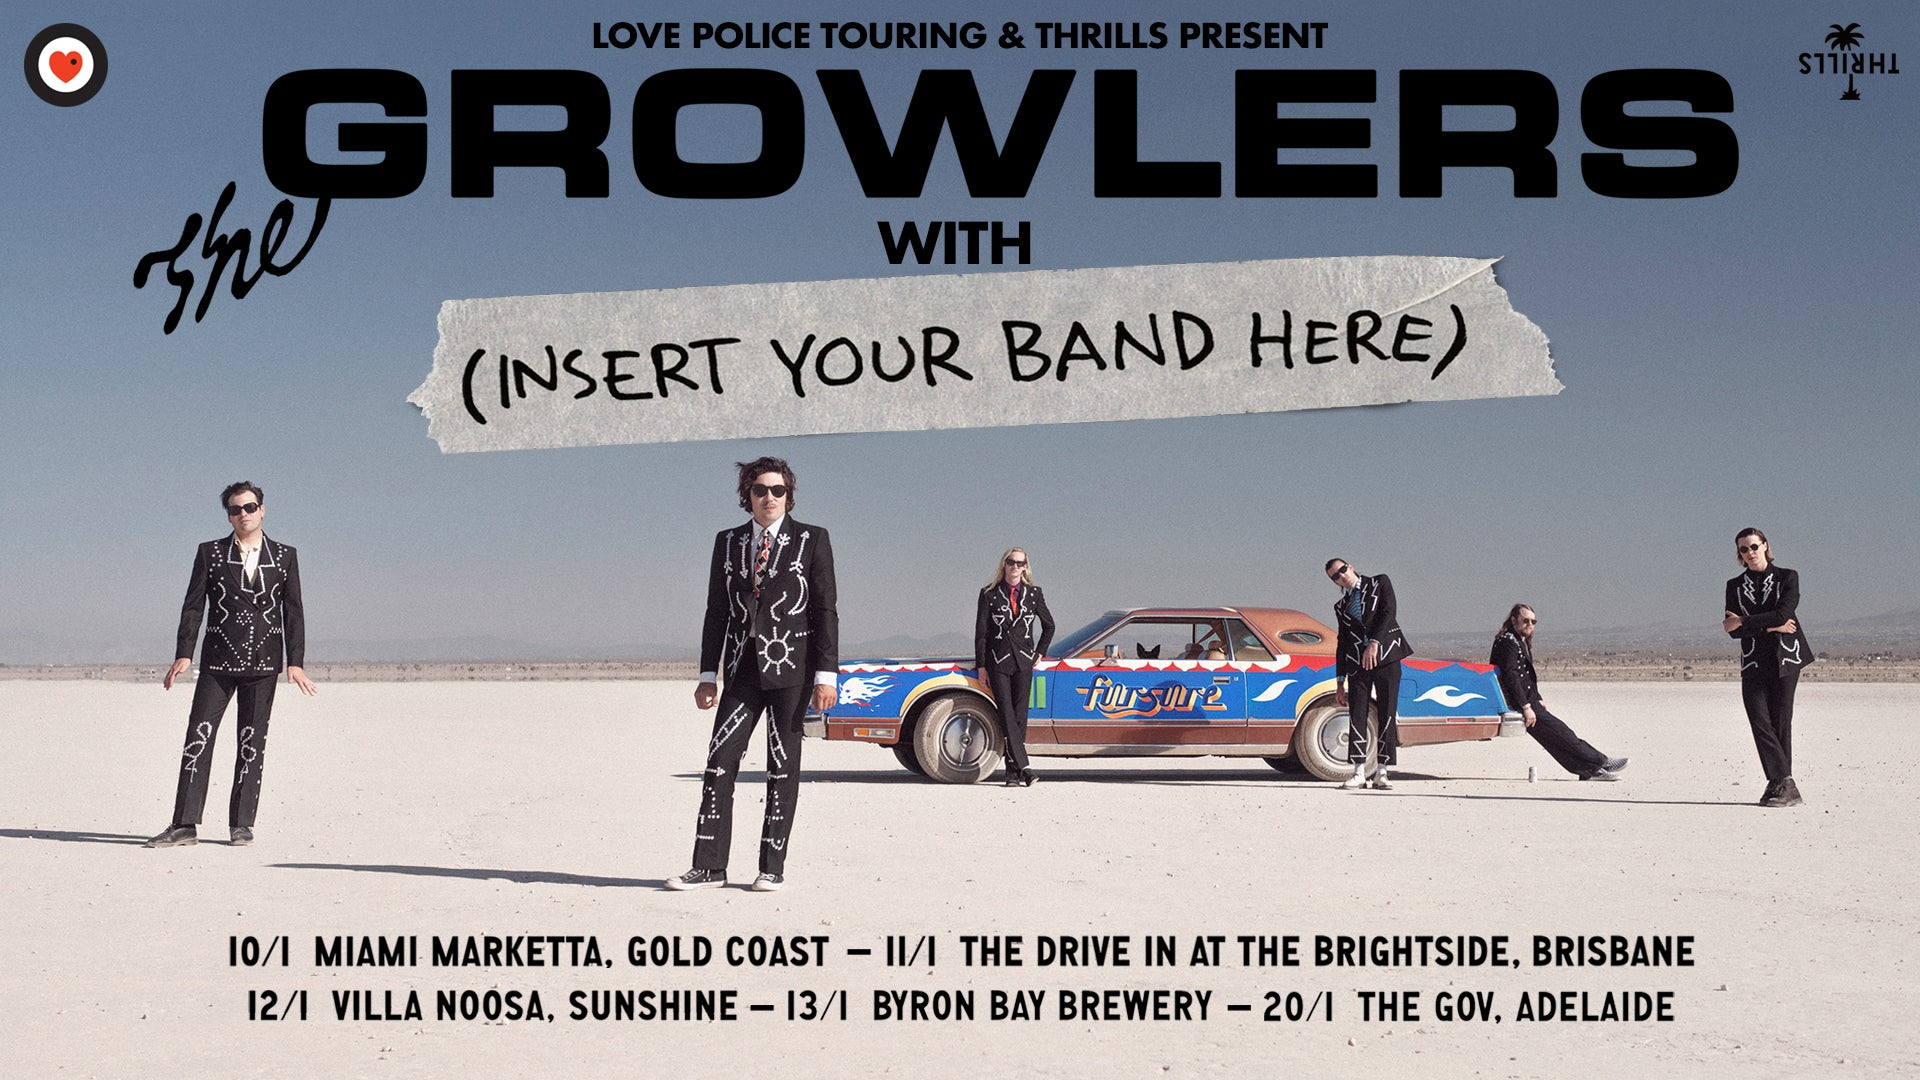 Thrills & Love Police Present: The Growlers Australian Beach Goth Tour